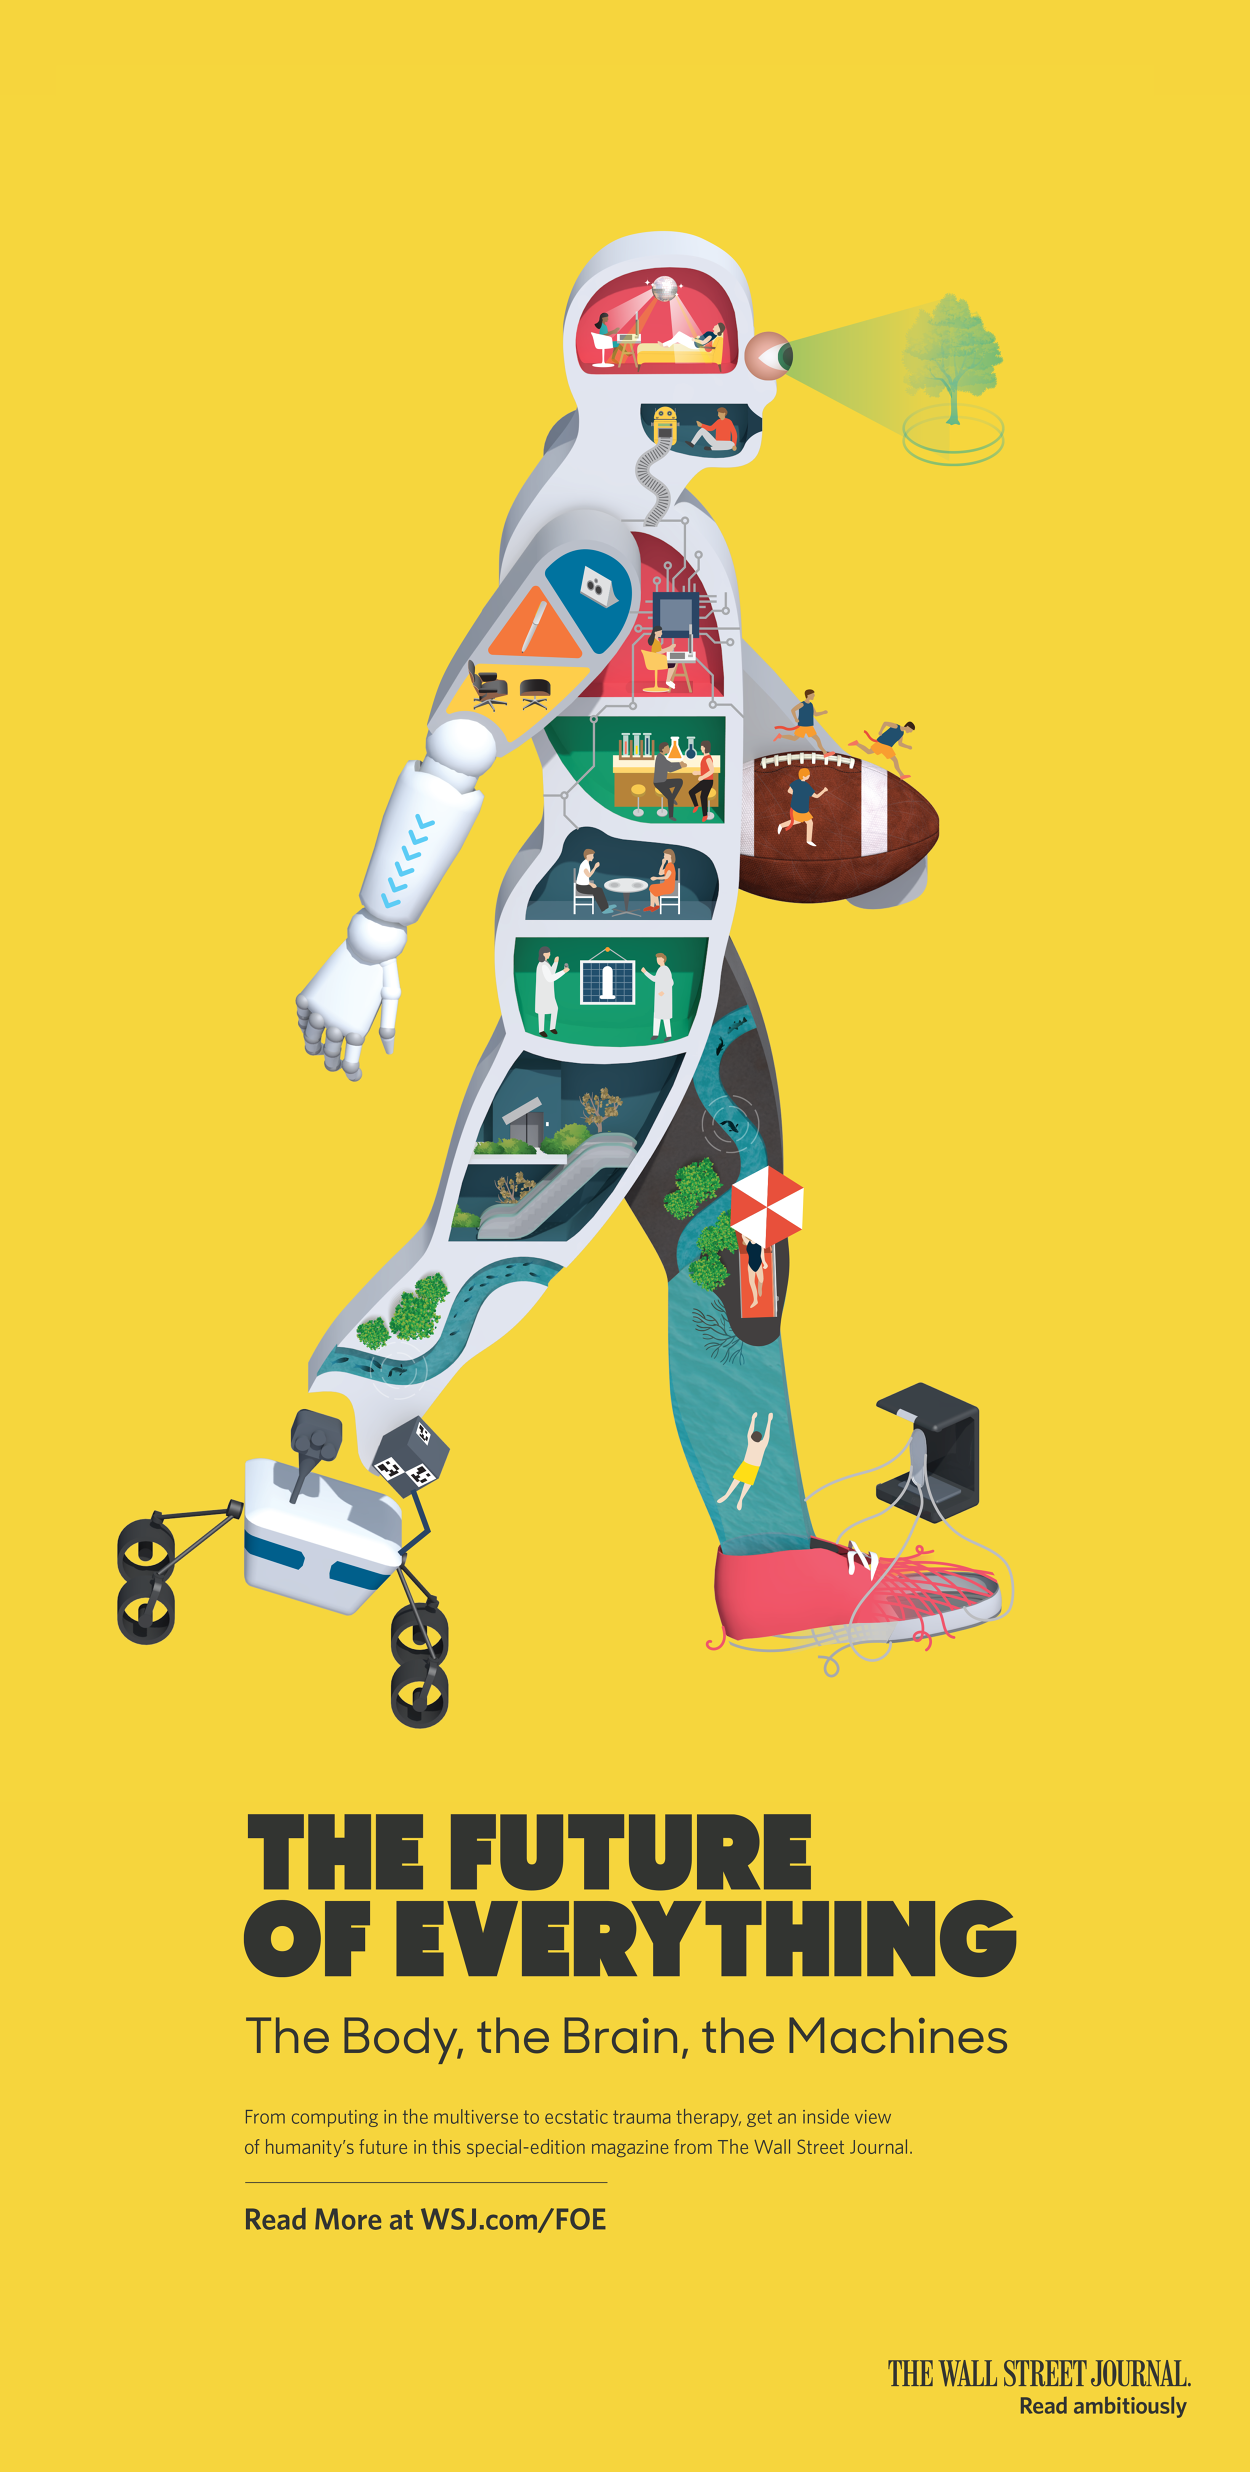 Future of Everything for Wall Street Journal - Jing Zhang illustration